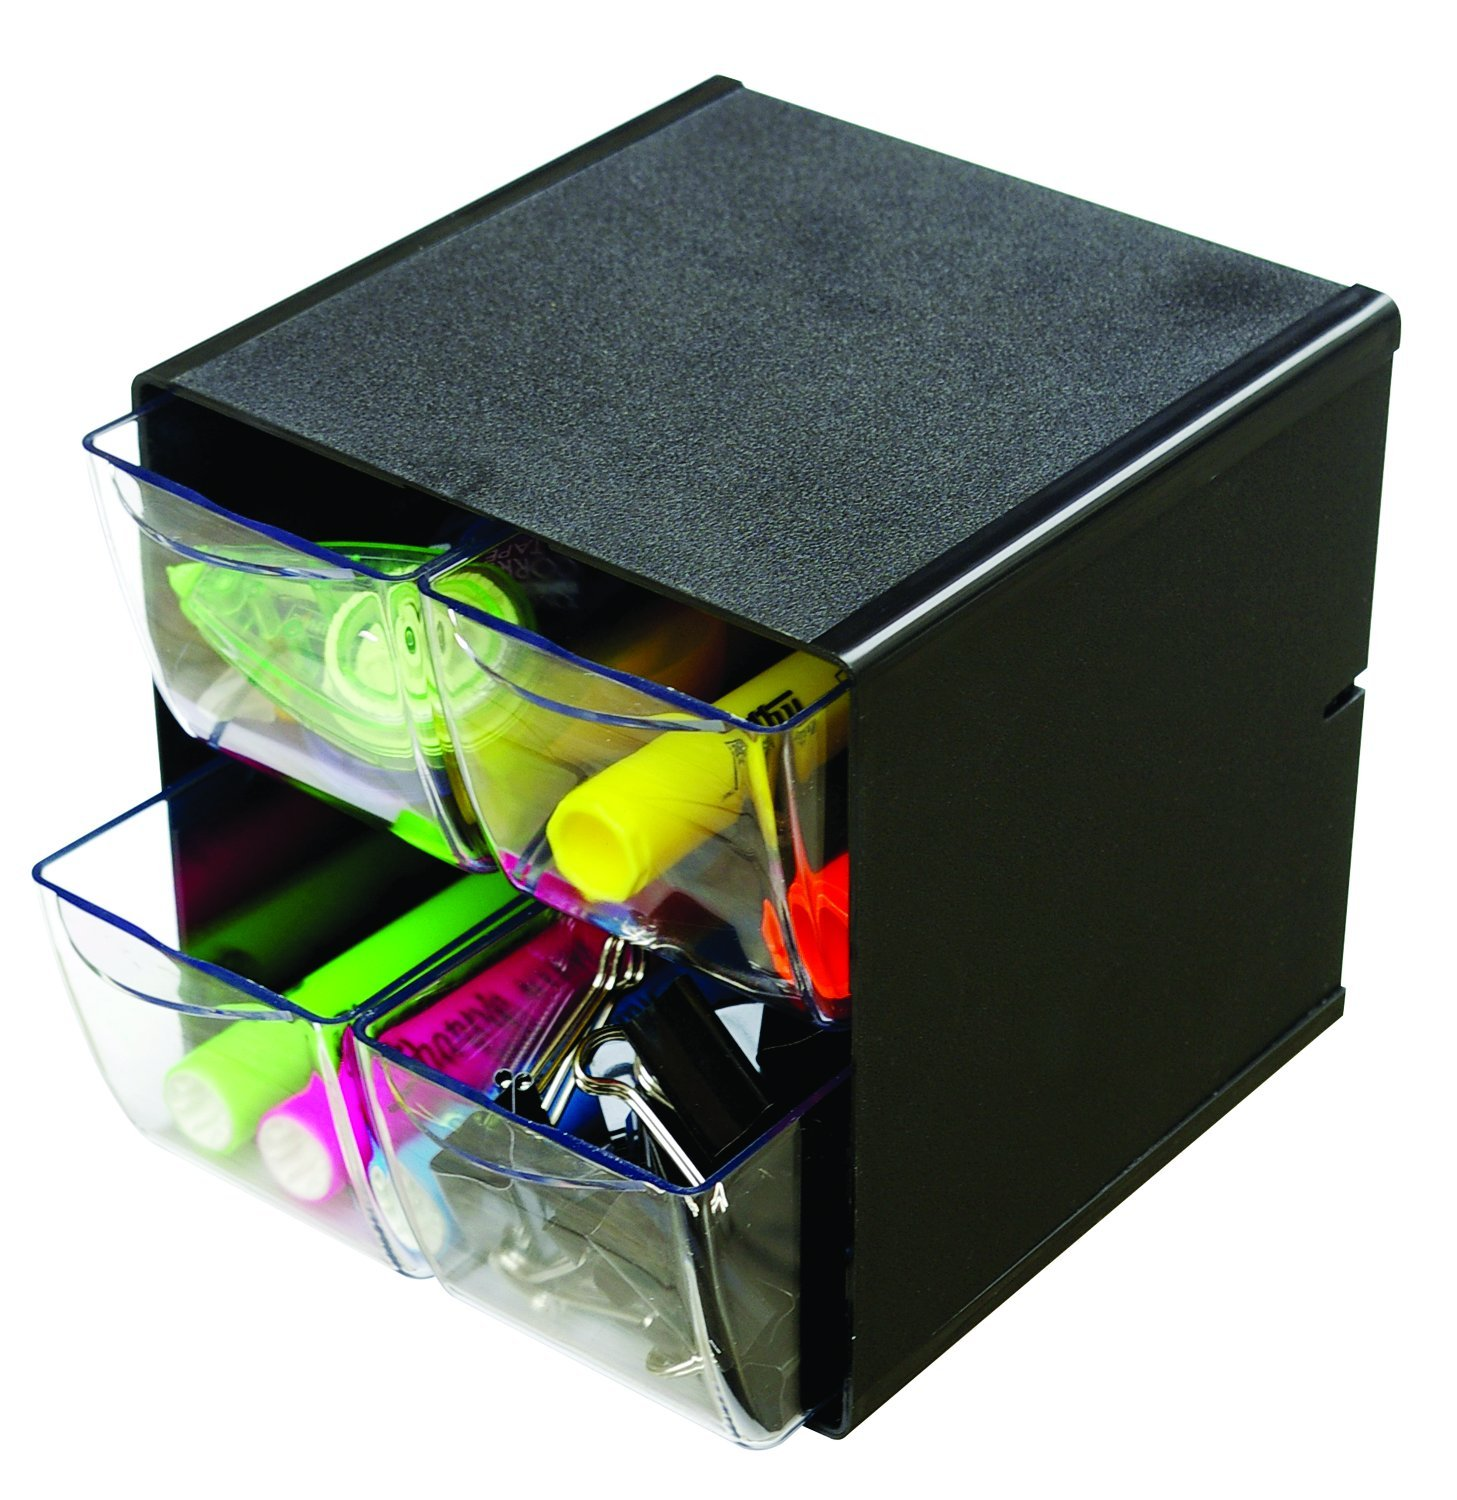 Deflecto 350201 X-Divider Cube Organiser - Crystal Yearntree Limited